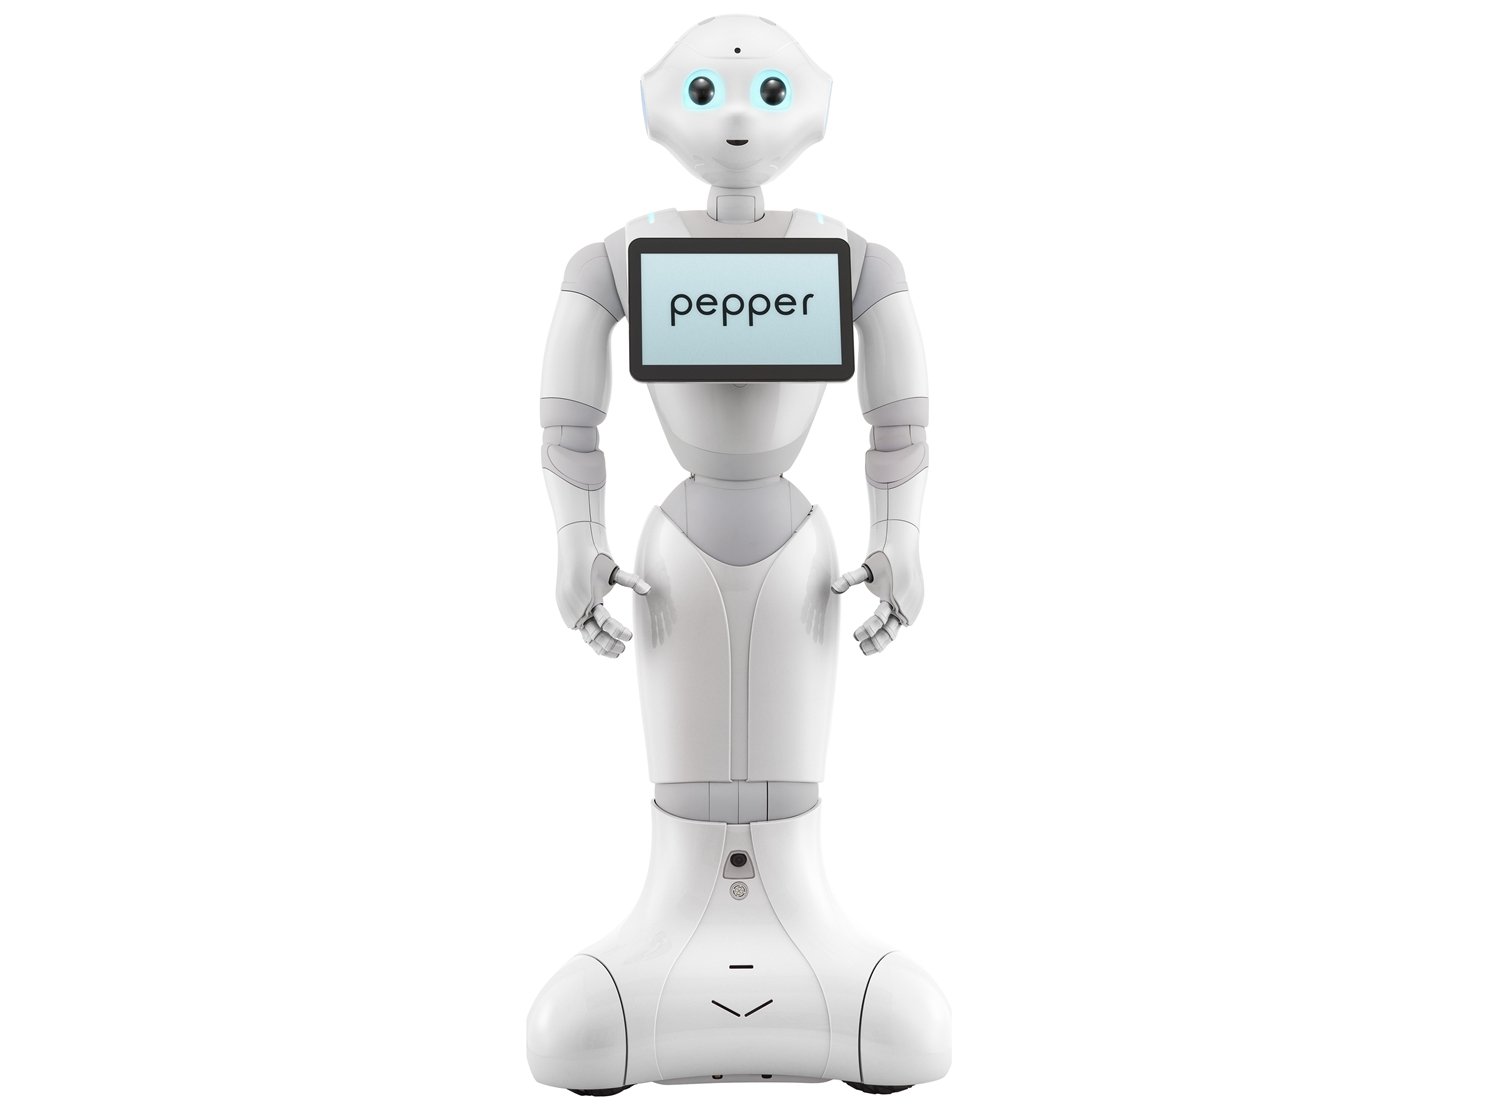 Pepper The Robot From Softbank Robotics | Buy Pepper Robot | Pepper Software Development